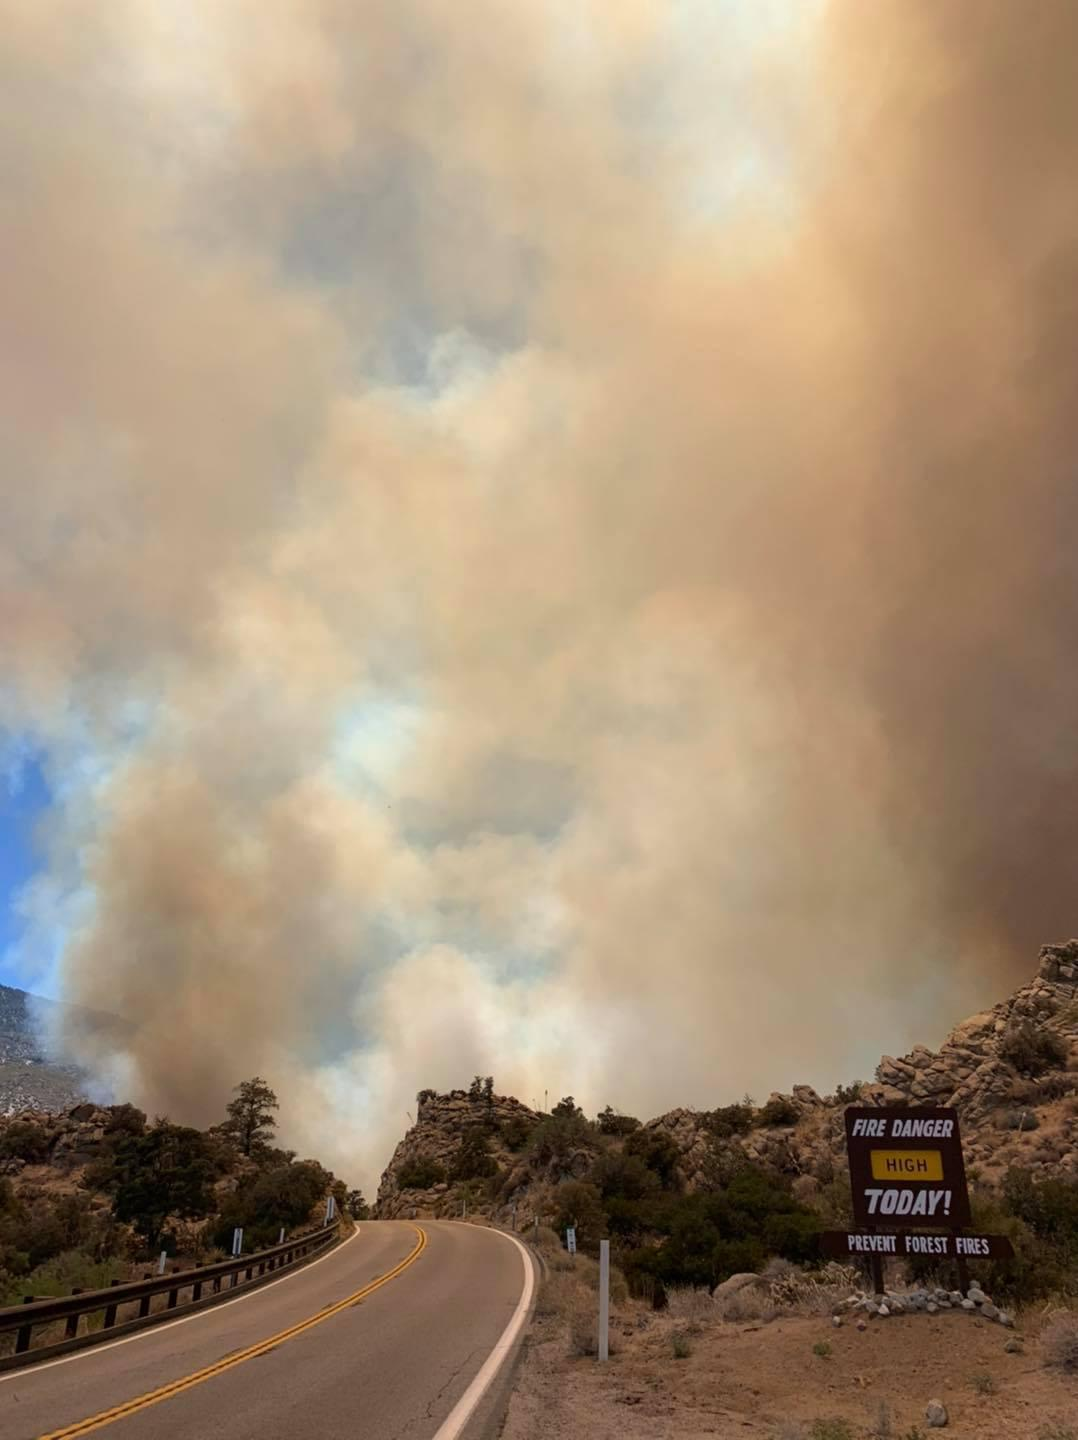 Dark smoke rises from behind a hill. In the foreground is a Fire Danger sign that says high.